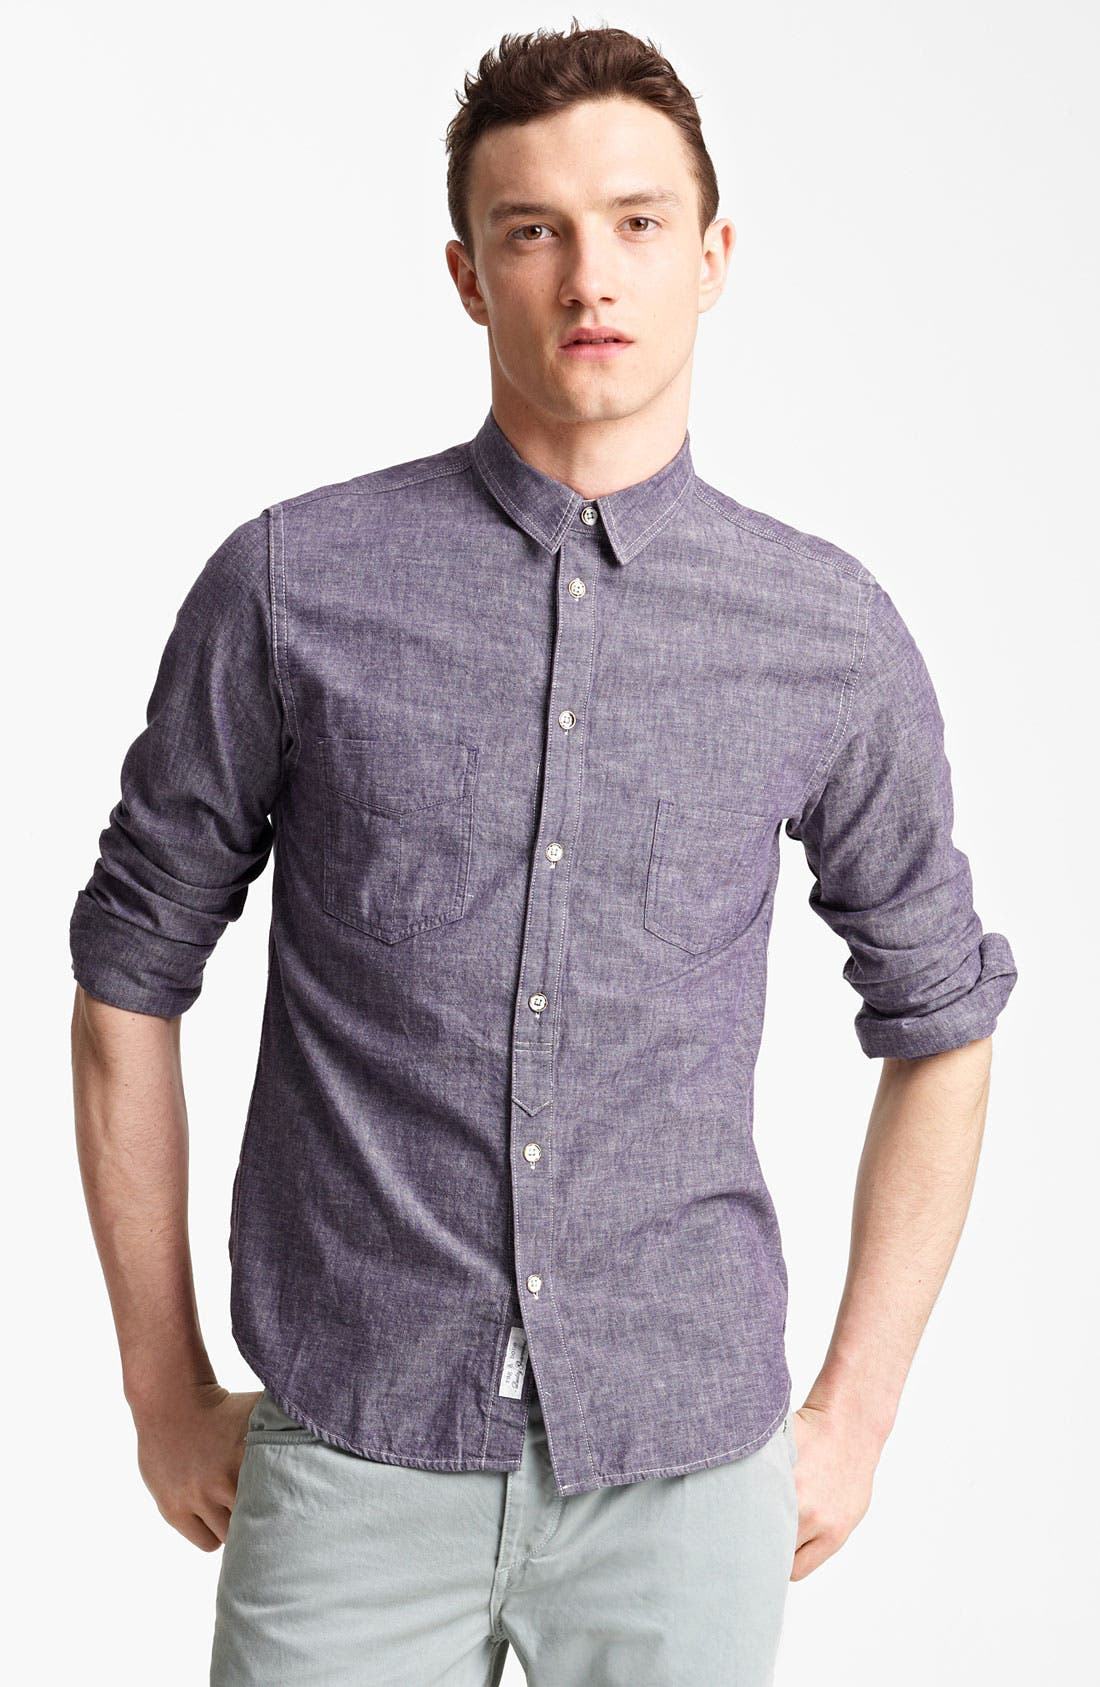 Alternate Image 1 Selected - rag & bone 'Grange' Chambray Shirt